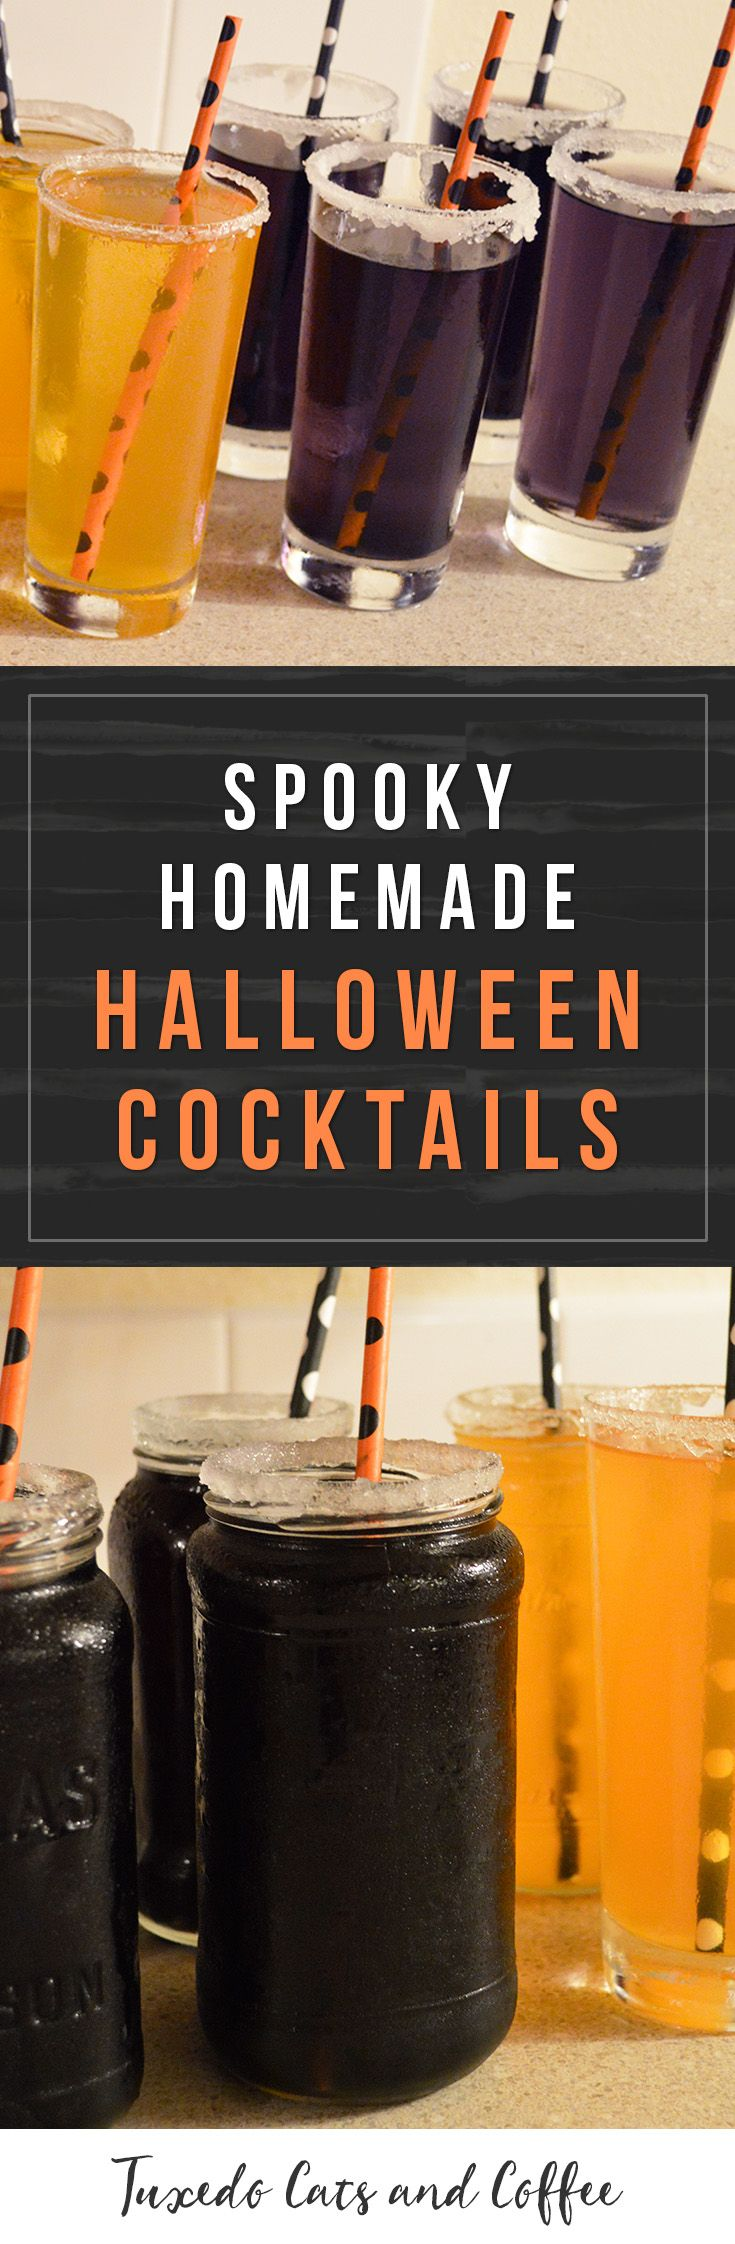 If you're having a Halloween party this year, try out some of these spooky homemade Halloween cocktails! You can make them with or without alcohol depending on your preferences by simply leaving out the alcohol or substituting another beverage to mix in. These black, purple, and orange cocktails are a perfect drink for your Halloween party.